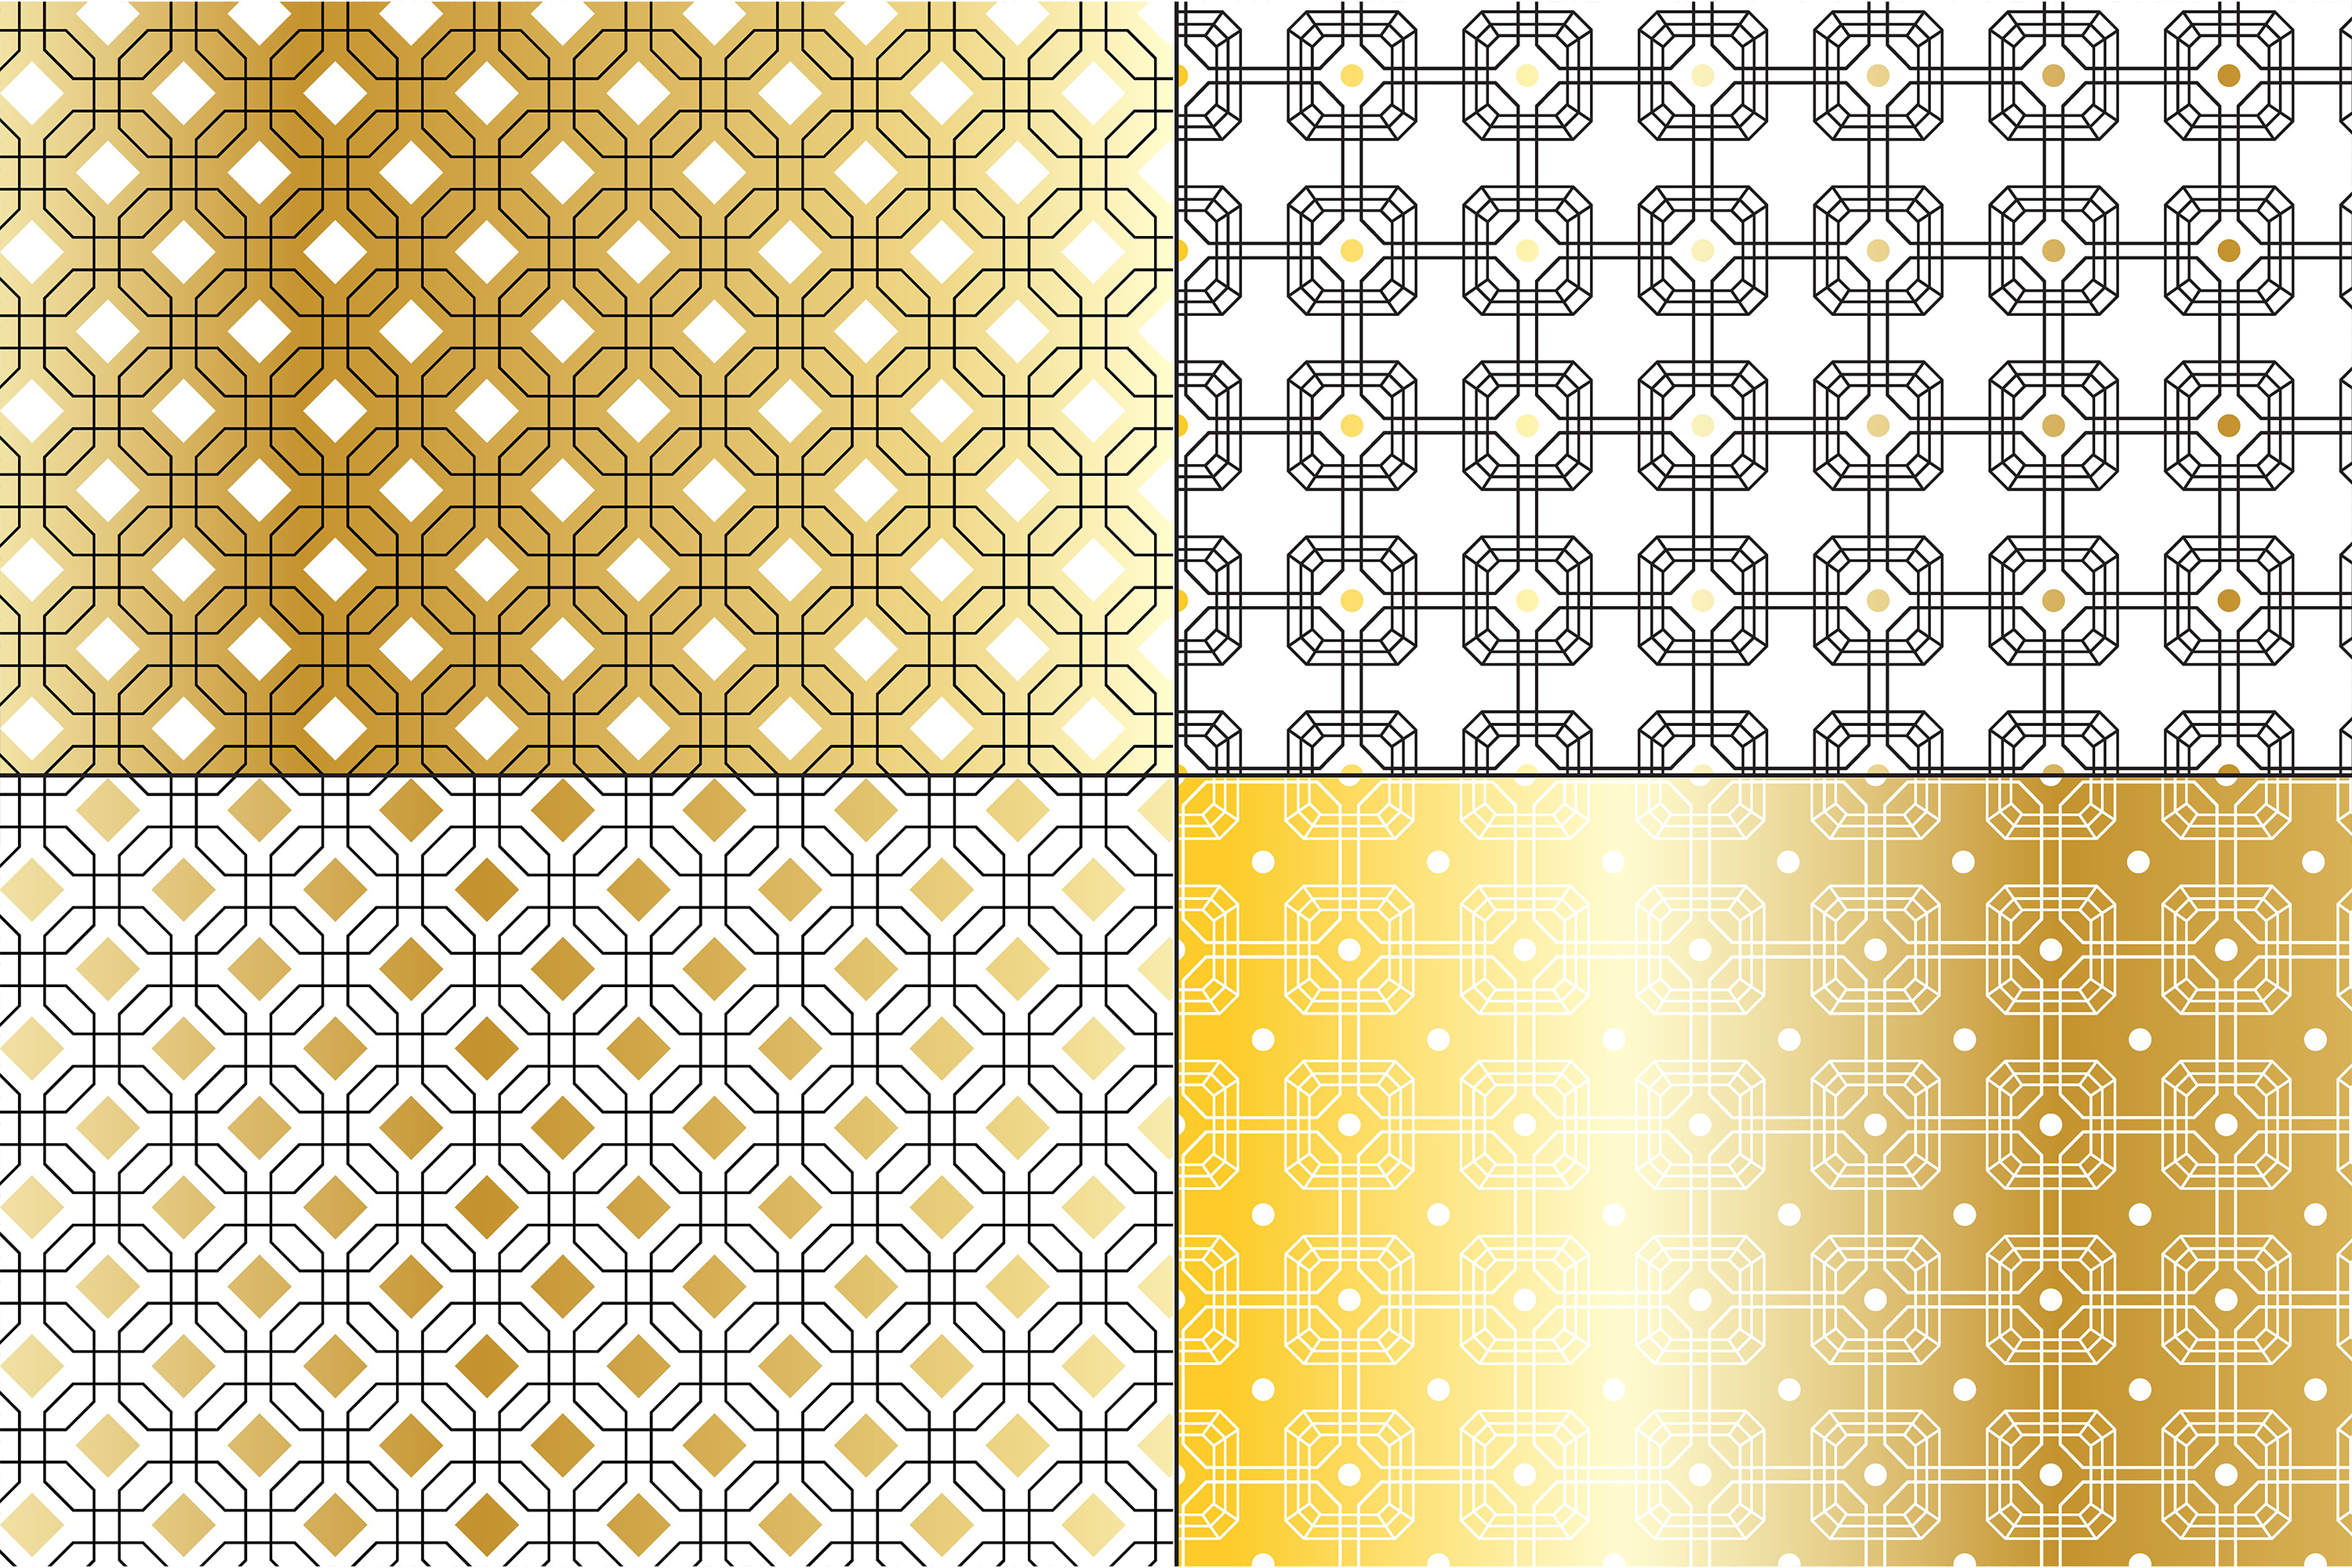 Gold Deco Patterns example image 5